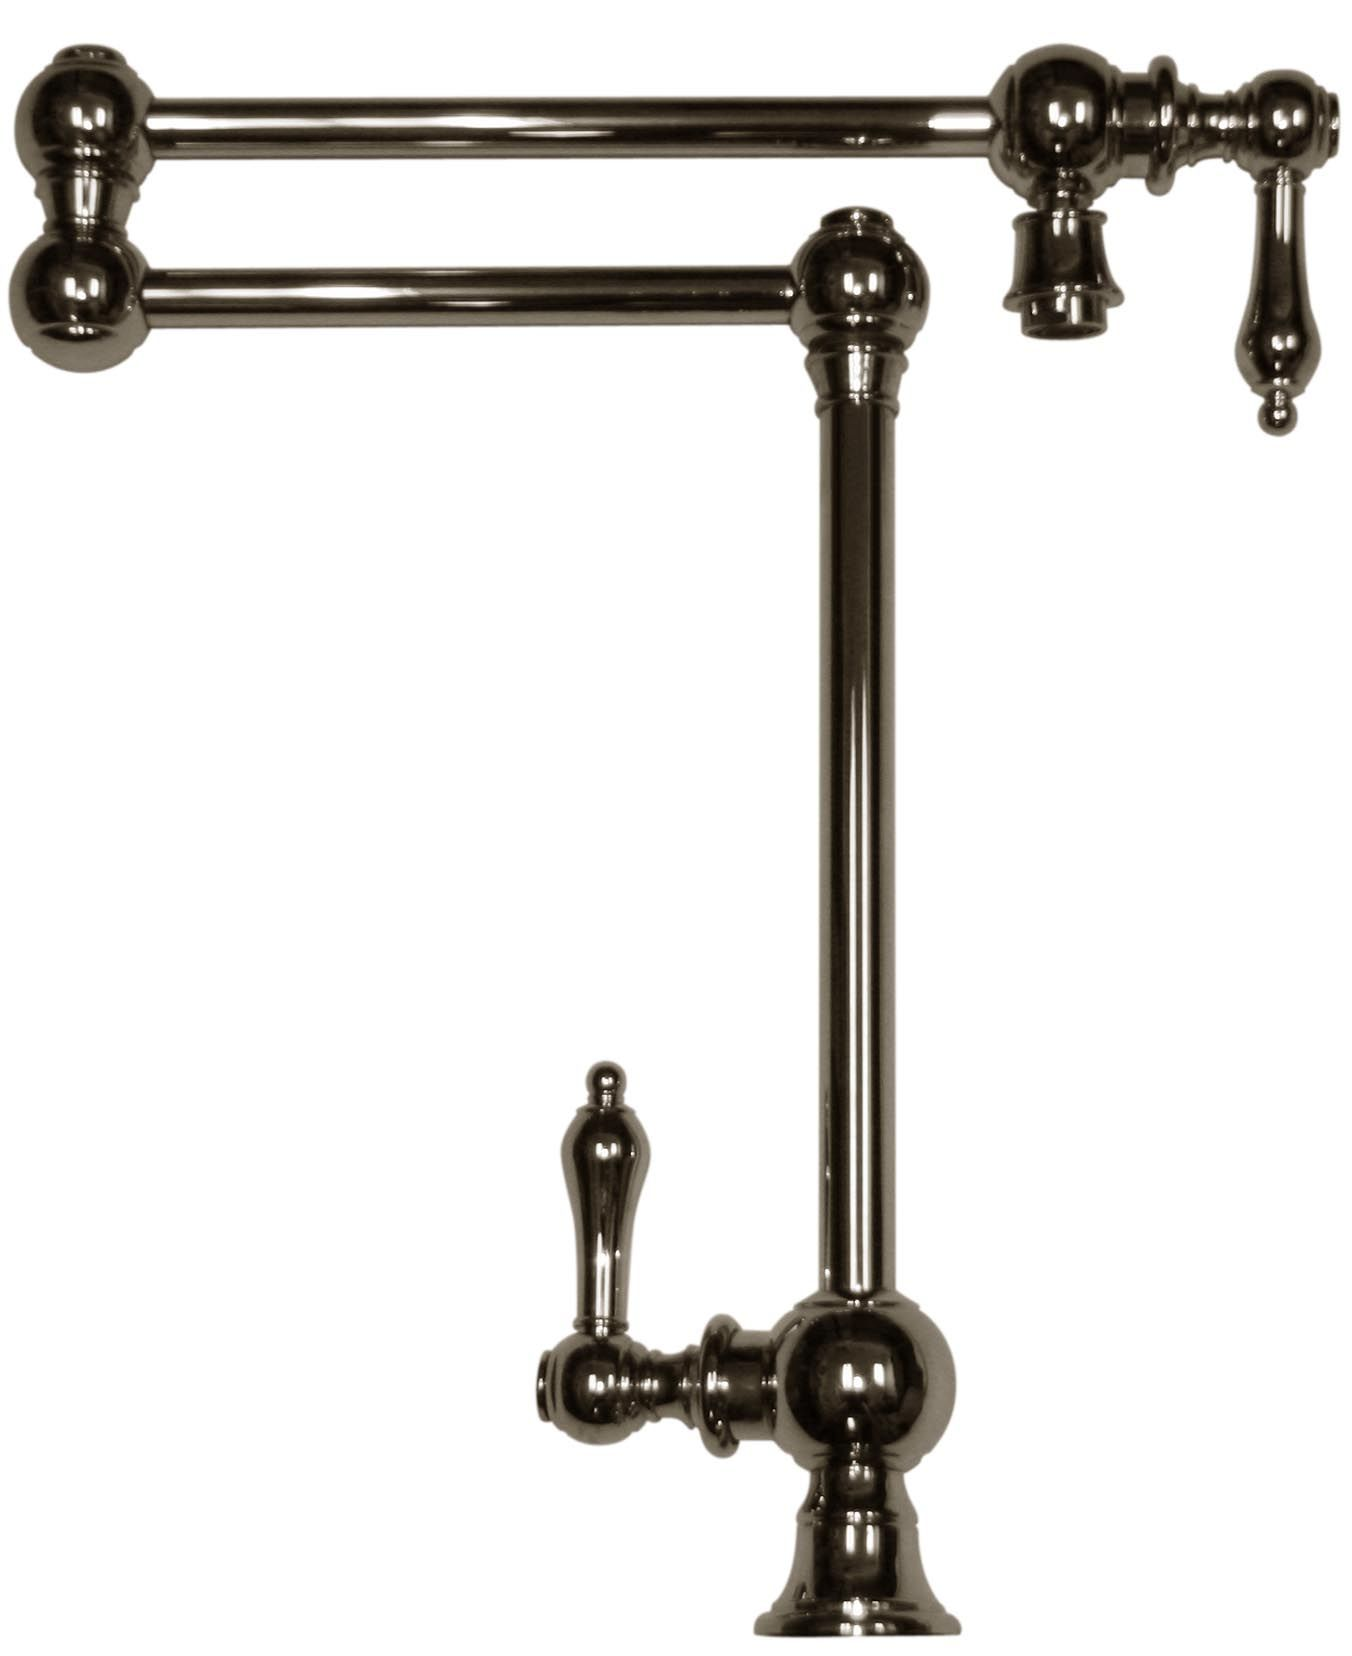 Patented traditional deck mount vintage iii pot filler Pot filler faucet